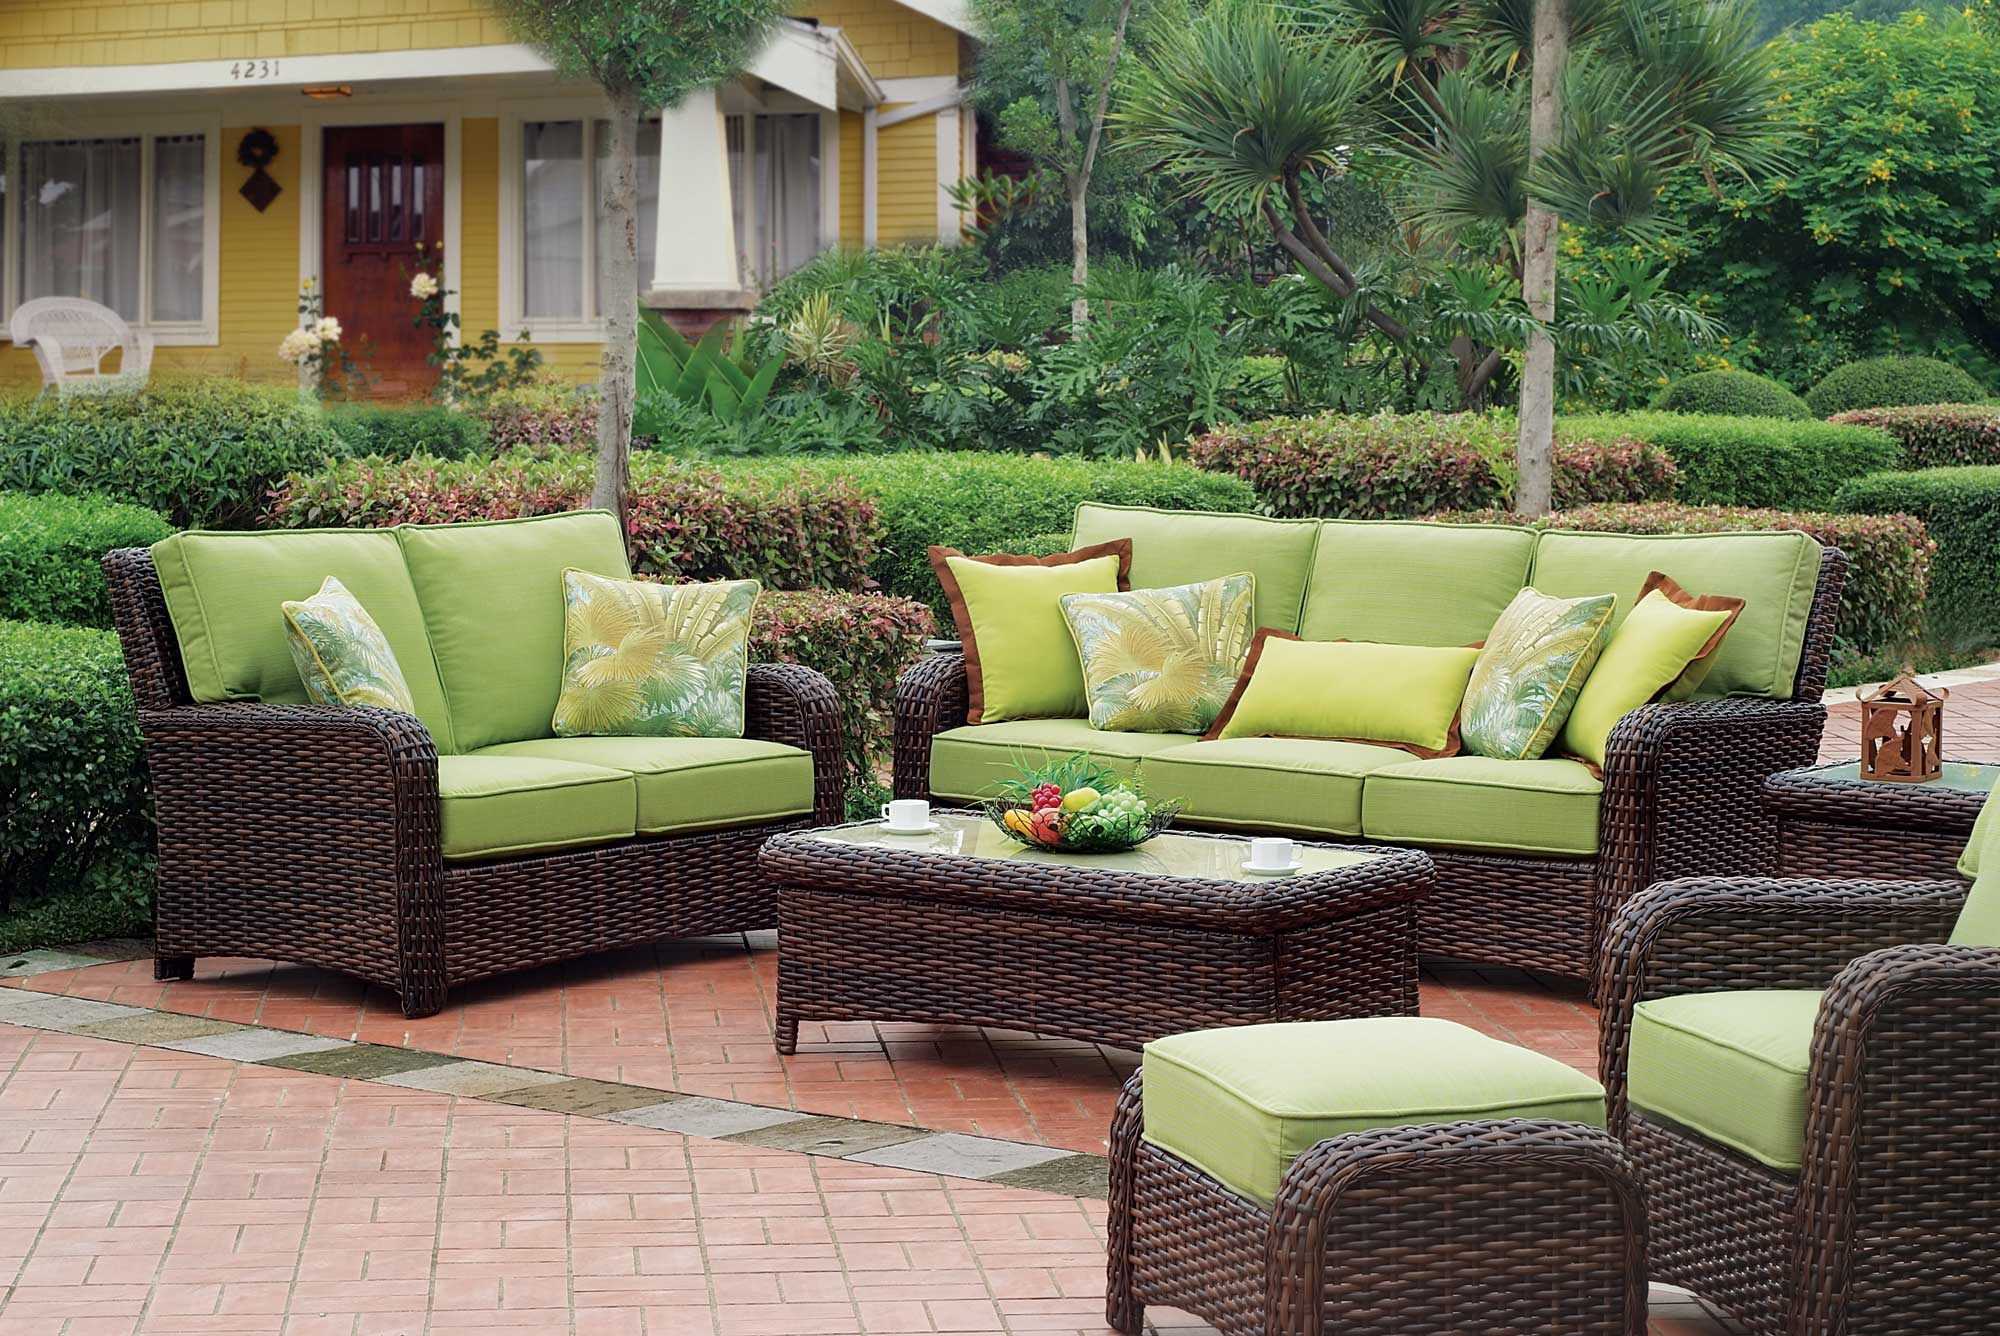 How to Opt Your Outdoor Living Space with Best Patio ... on Living Spaces Outdoor Sectional id=66263